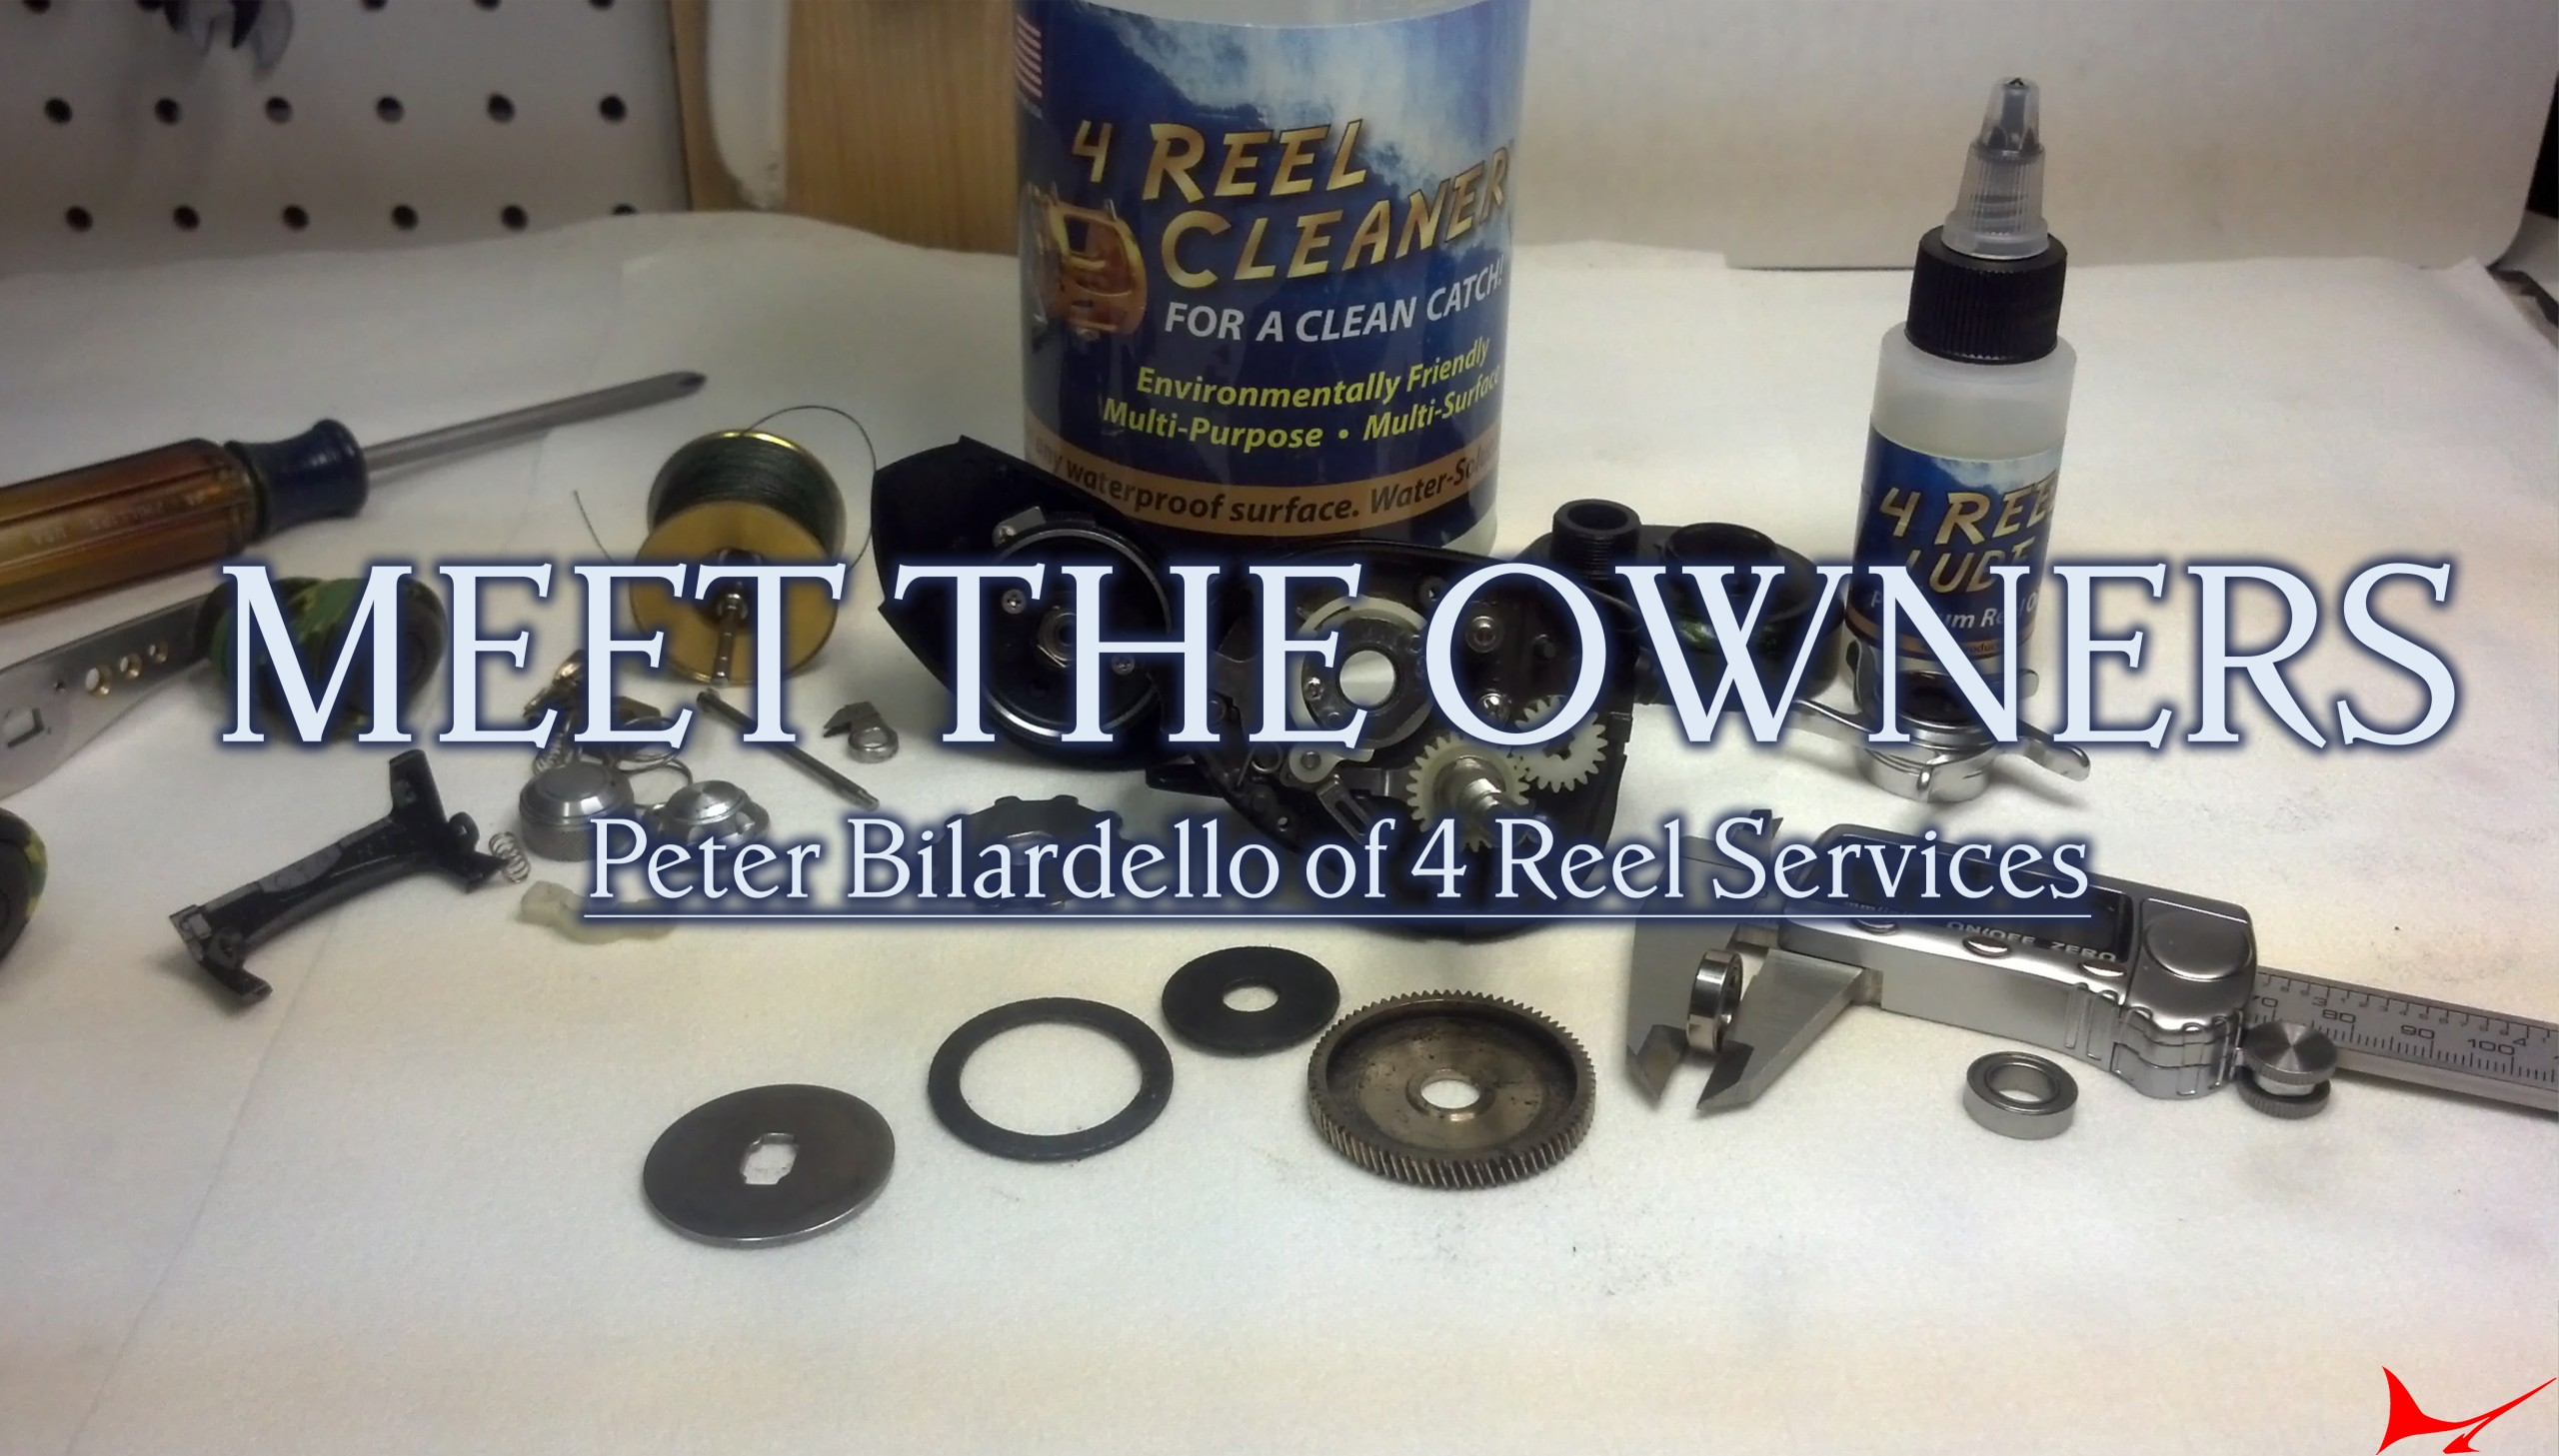 Meet the Owners: Peter Bilardello of 4 Reel Services